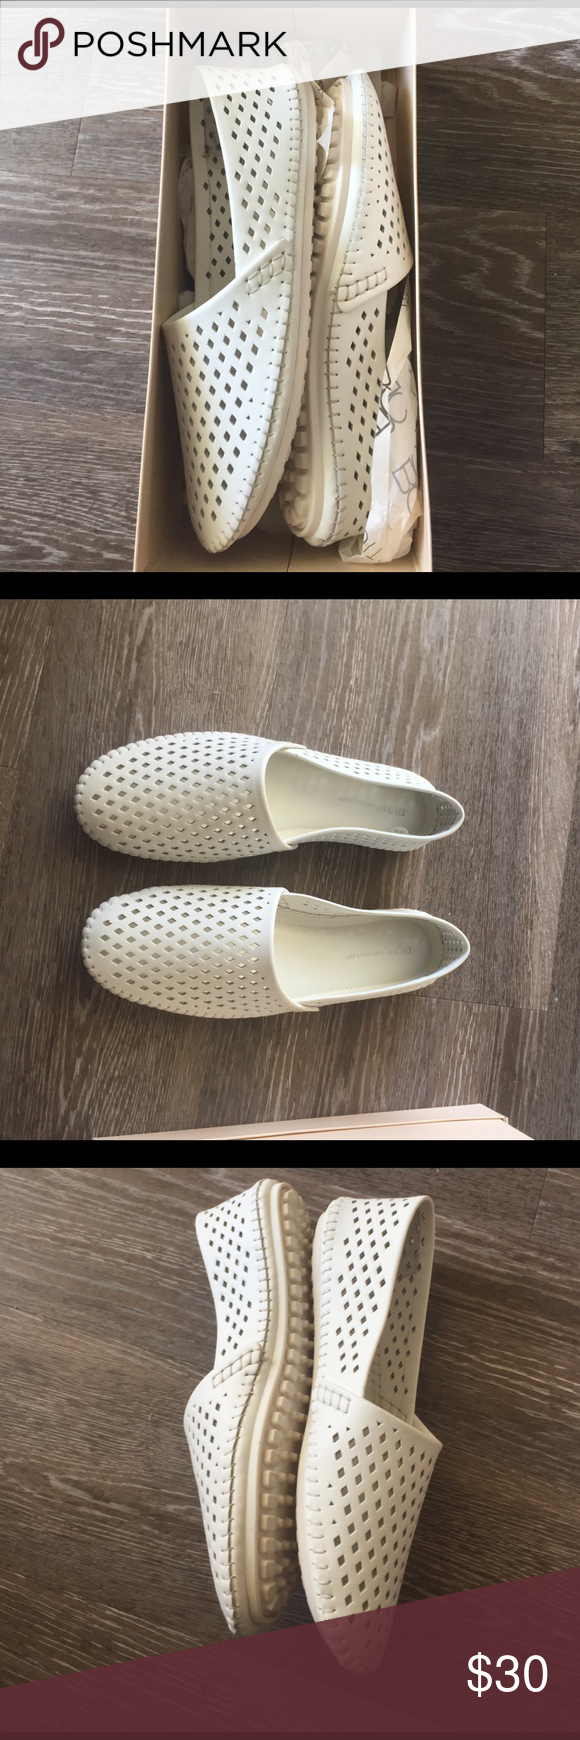 NWT bcbg leather flats Brand new never worn. Perforated leather flats (real leather) cushioned insole. Rubber bottom. BCBGeneration Shoes Flats & Loafers